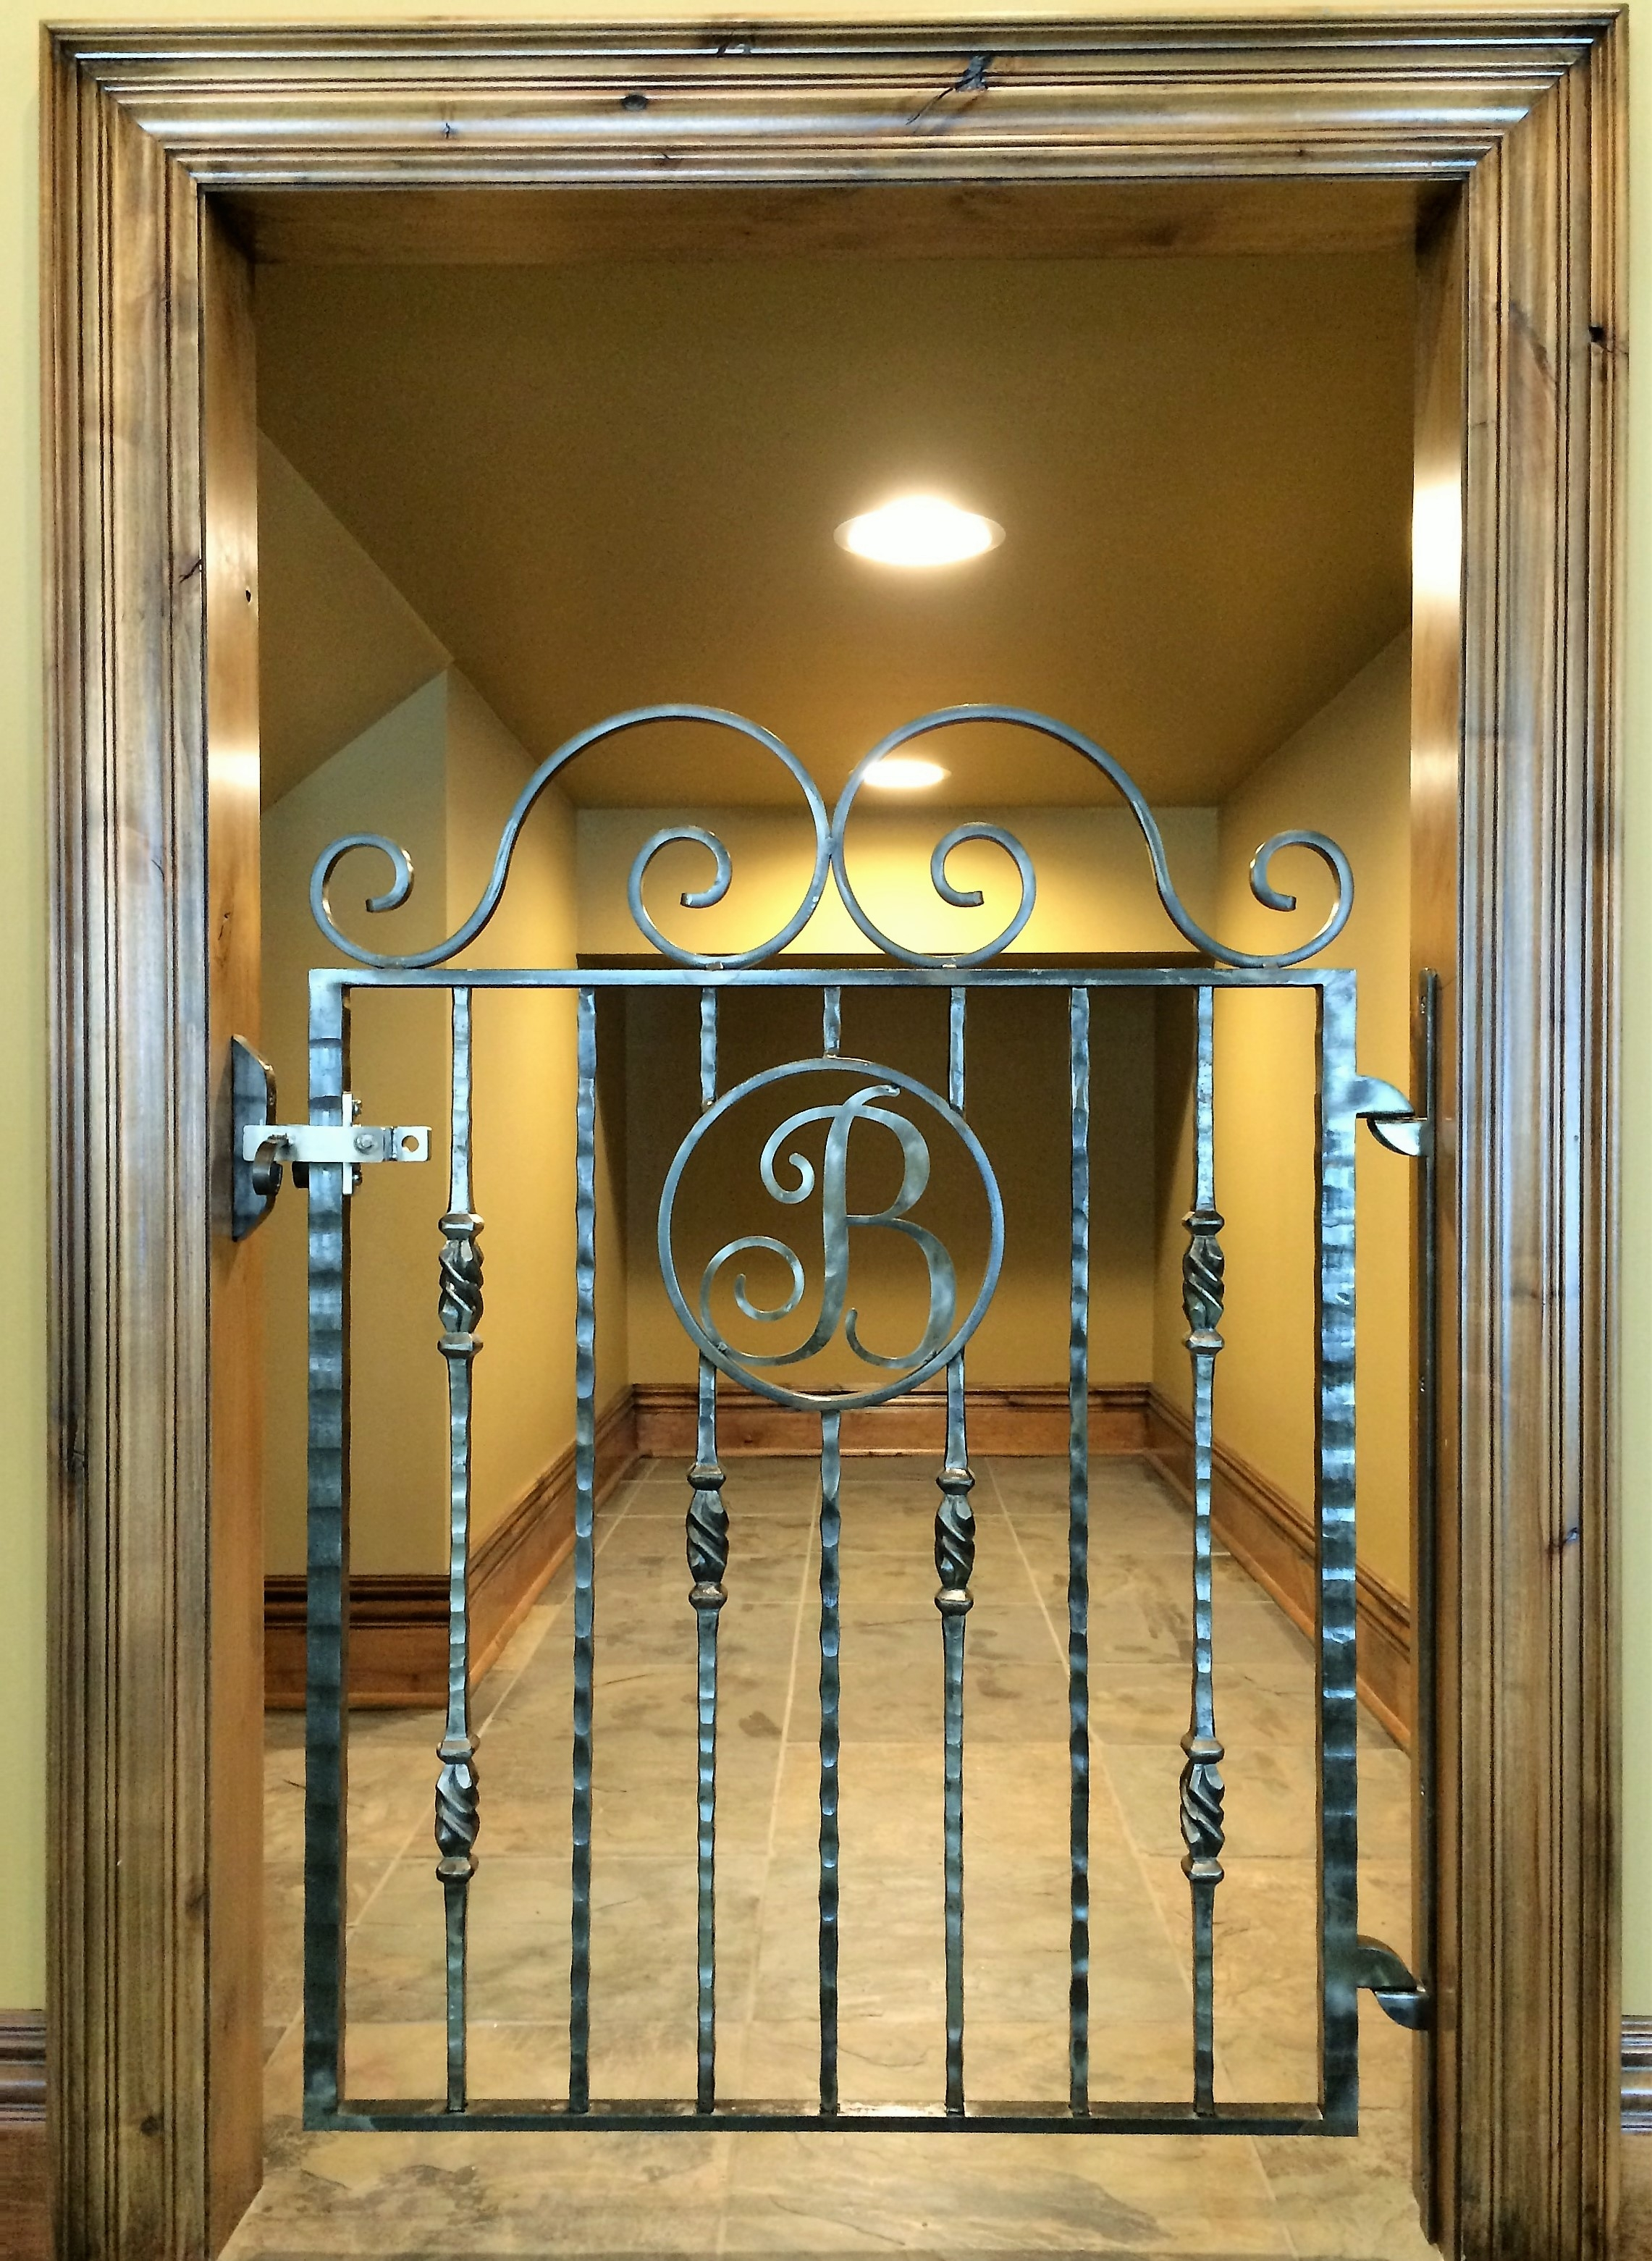 Interior Doors And Gates Finelli Ironworks | Steel Gates And Stairs | Dreamstime | Handrail | Stainless Steel | Fence Gate | Egress